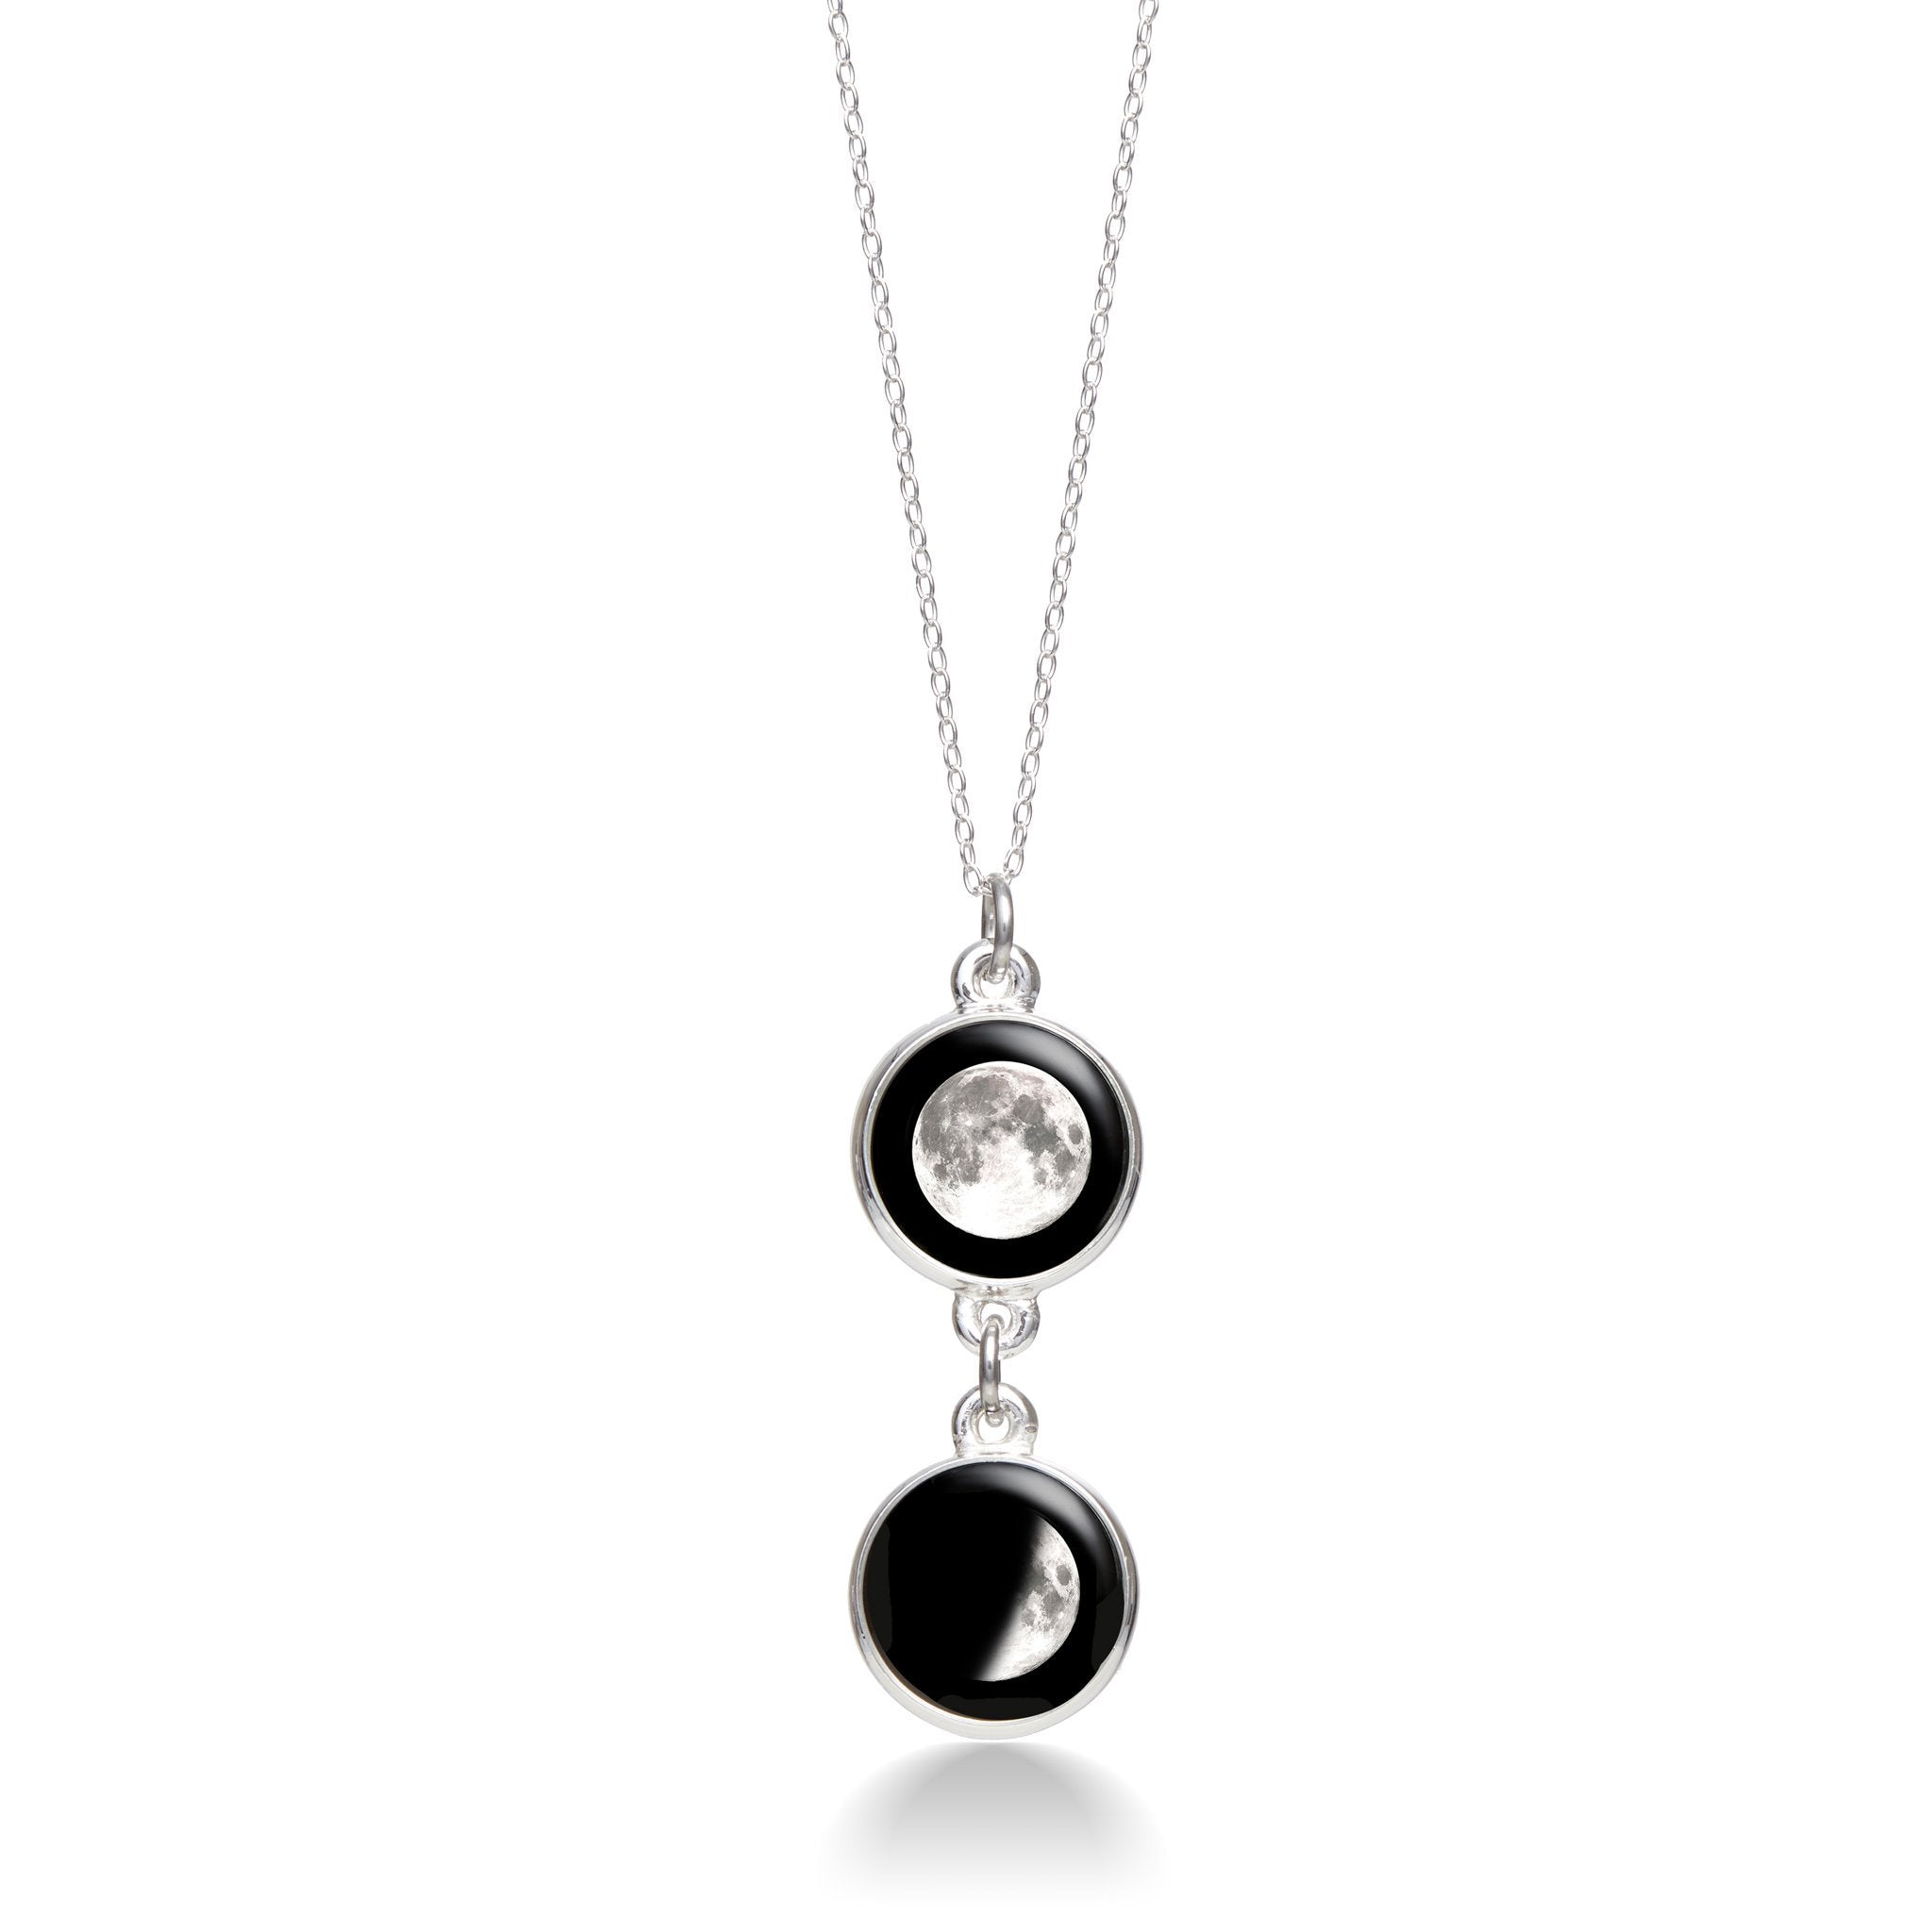 Lunar Twin Charm Necklace